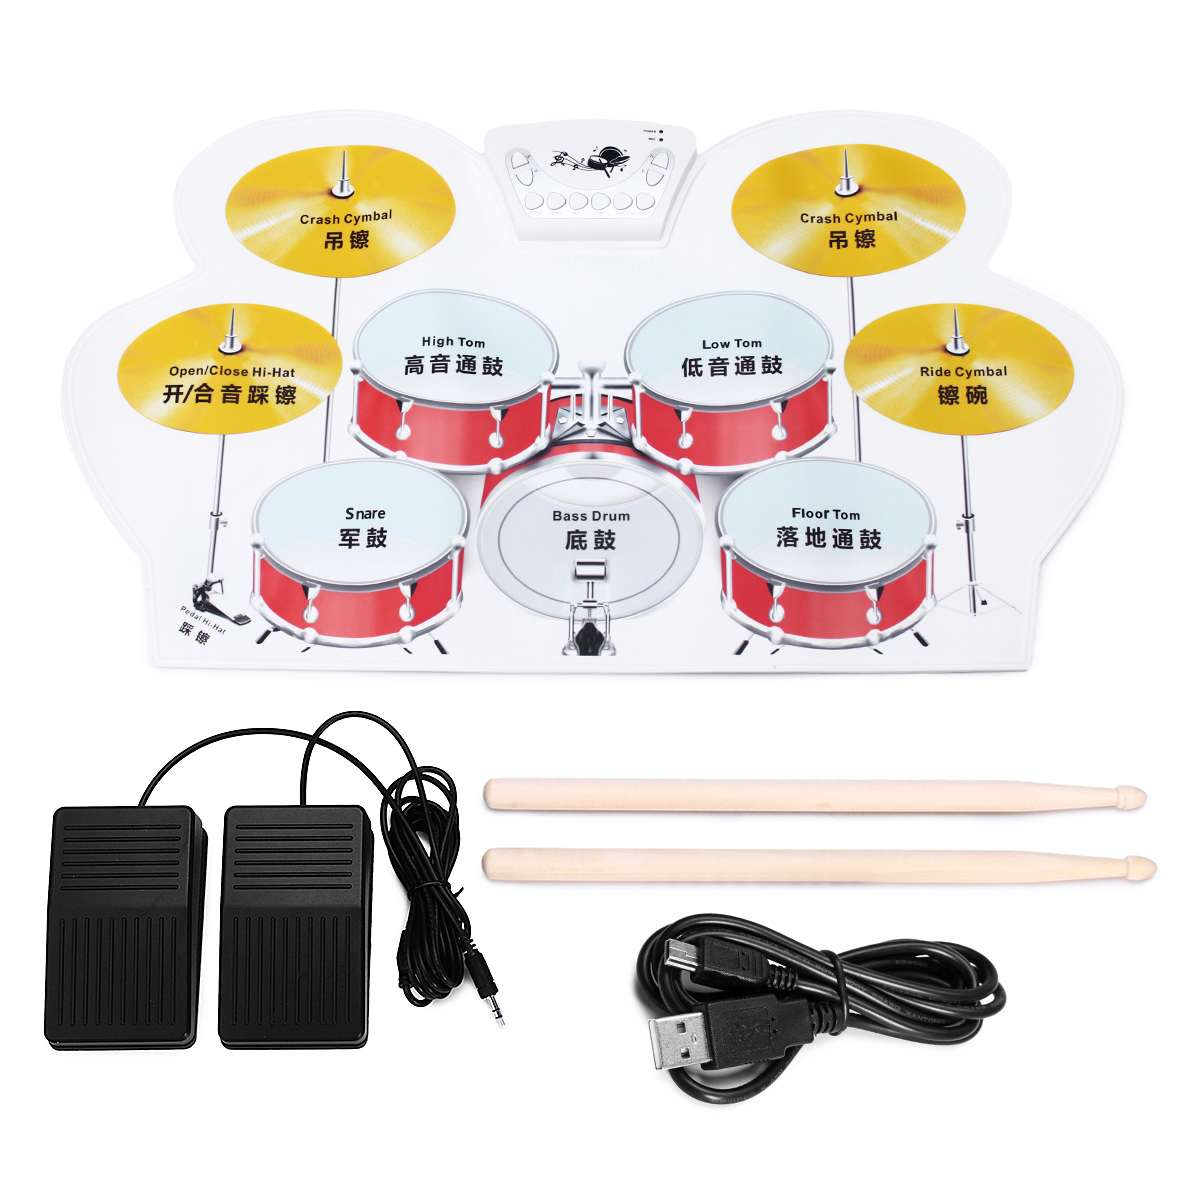 Portable Electronic Drum Digital USB 9 Pads Roll Up Drum Set Plastic Electric Drum Pad Kit With DrumSticks Foot Pedal For KidsPortable Electronic Drum Digital USB 9 Pads Roll Up Drum Set Plastic Electric Drum Pad Kit With DrumSticks Foot Pedal For Kids